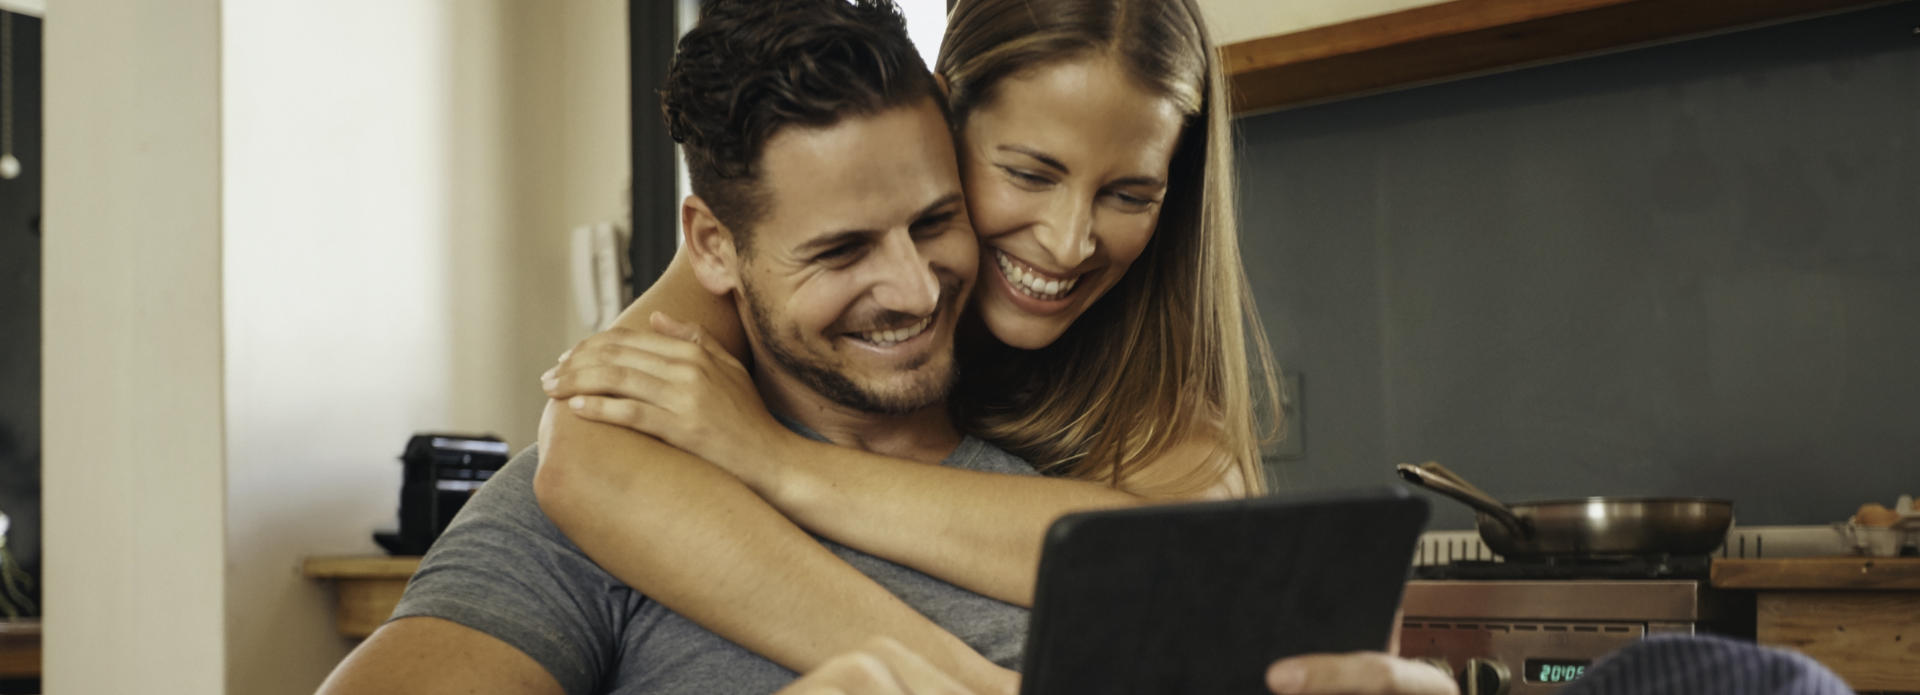 happy couple looks at the tablet